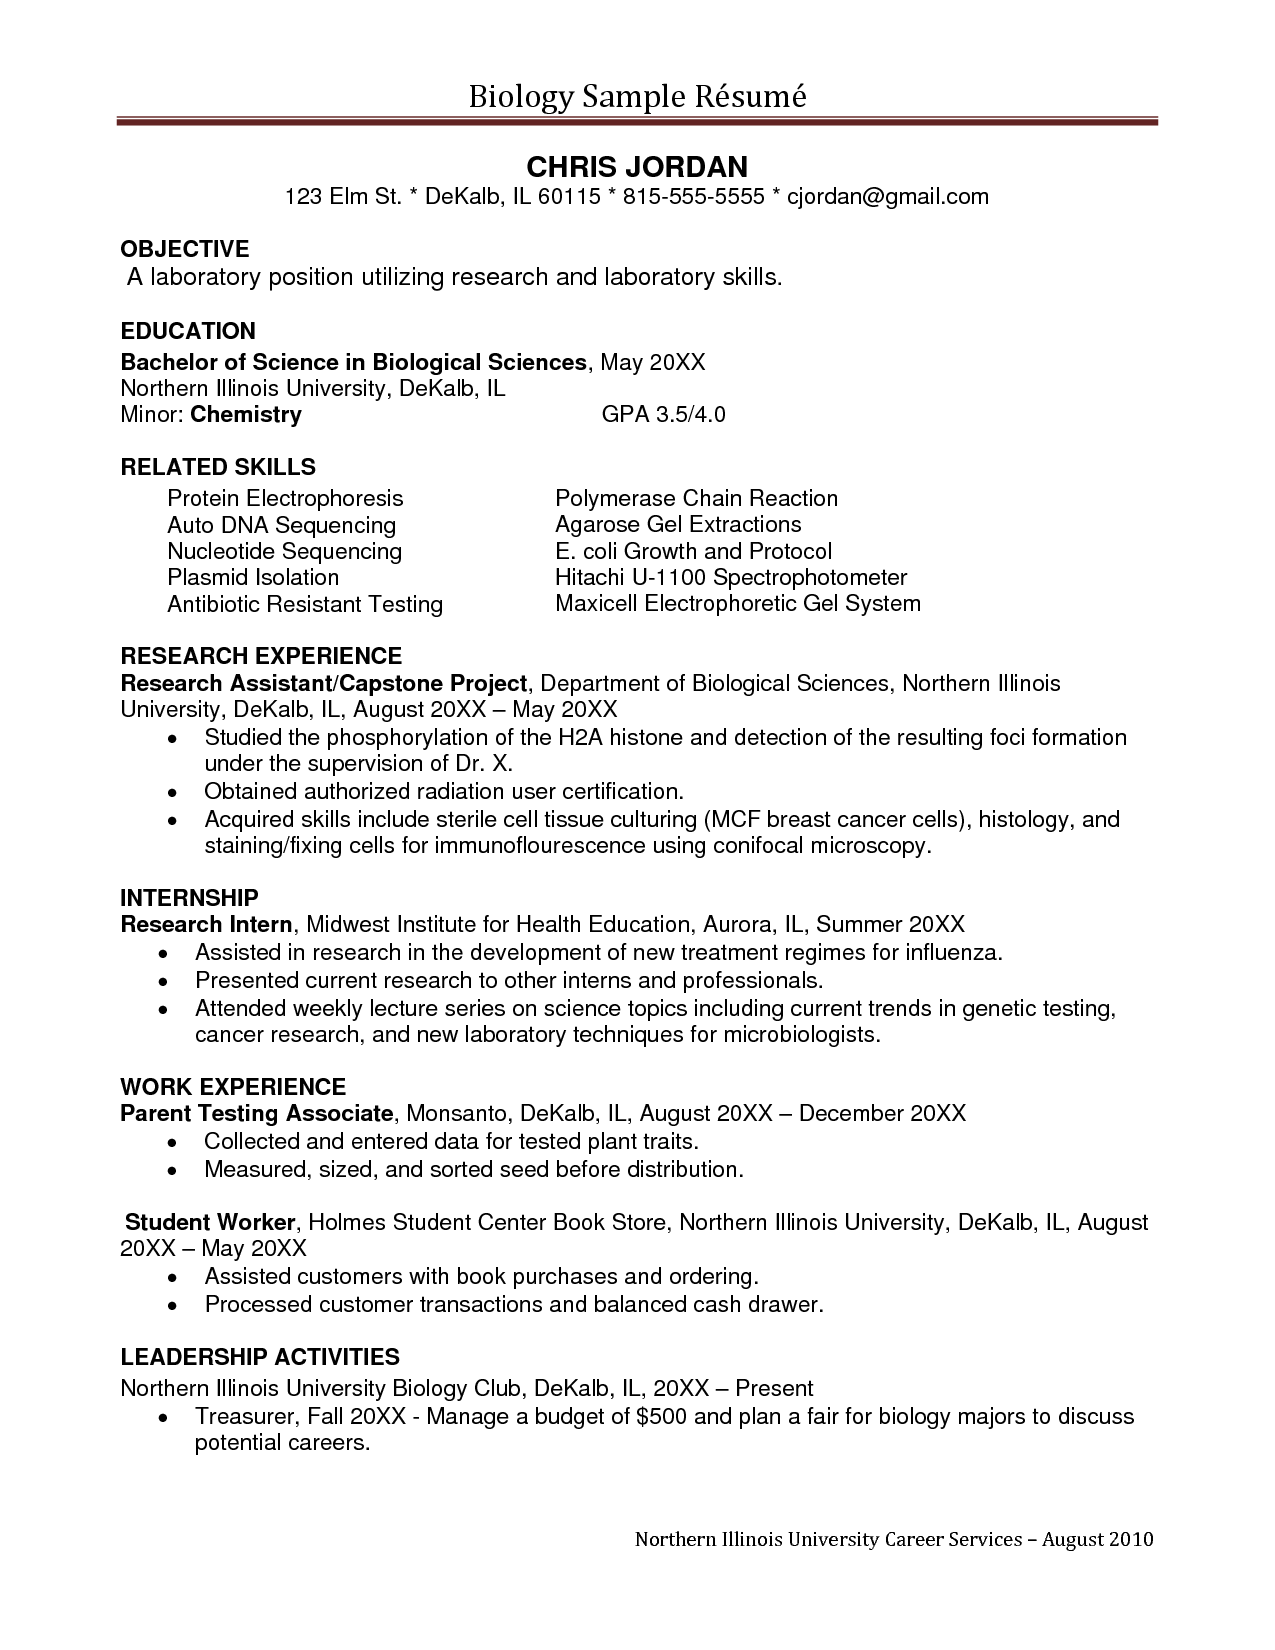 A Good Objective For A Resume Sample Undergraduate Research Assistant Resume Sampleĺ